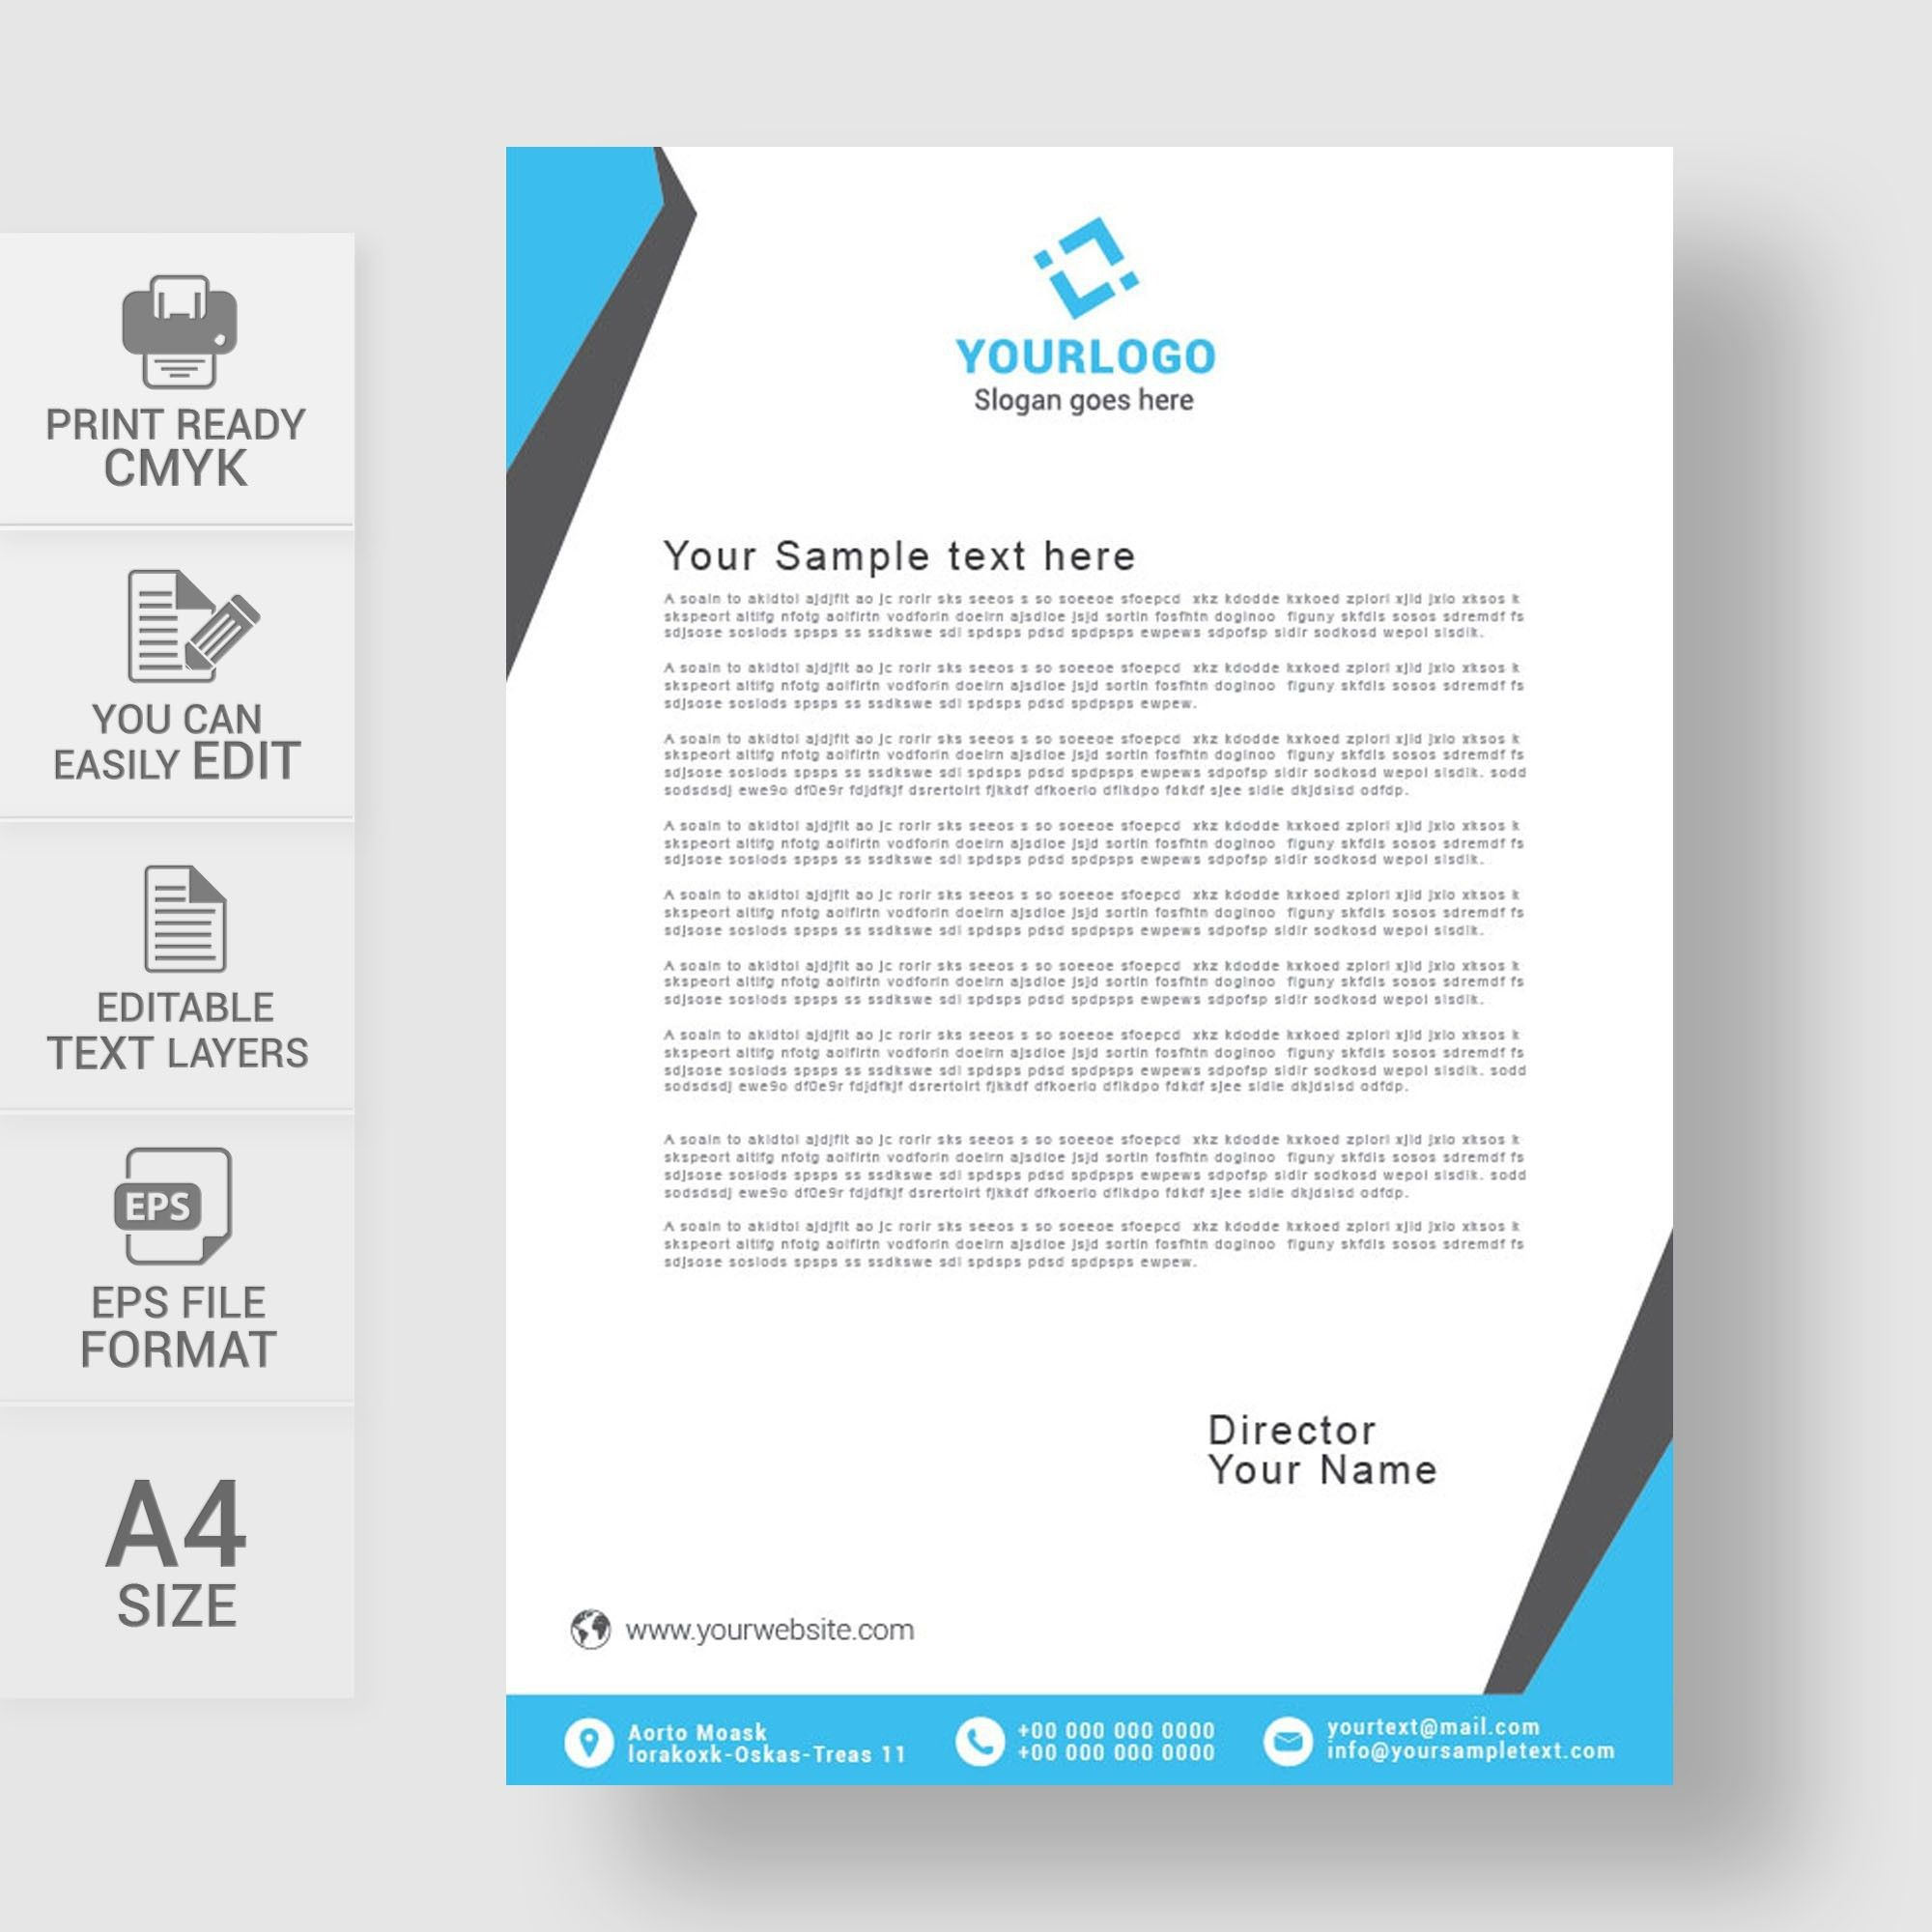 000 Unique Free Company Letterhead Template Sample  Online Psd Download Word 2007Full